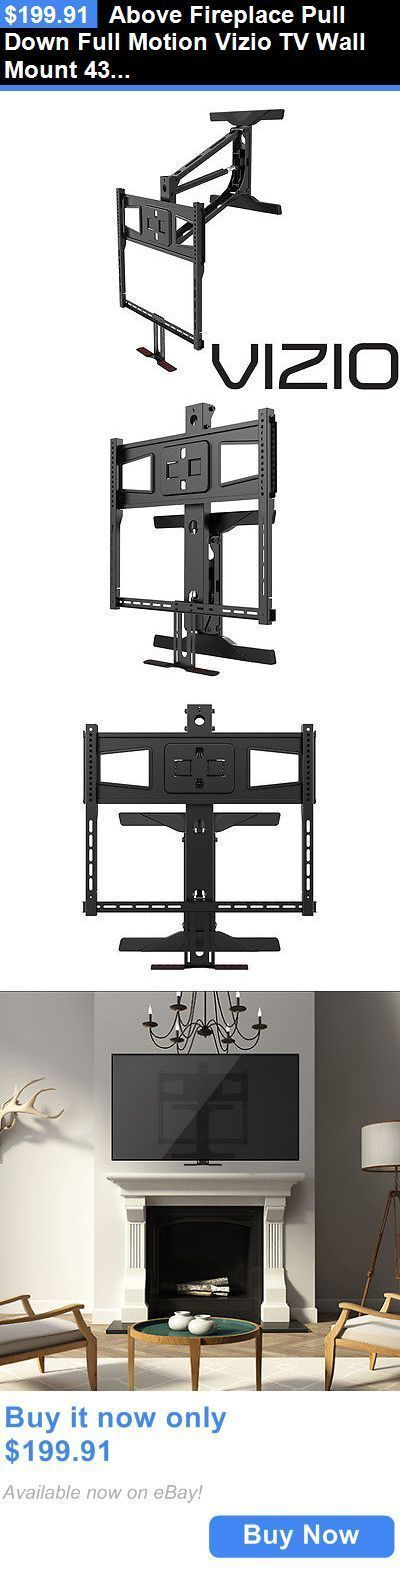 Tv Wall Mount With Shelf For Dvd | Tv Bracket Ideas U0026 Wall Mount |  Pinterest | Tv Wall Mount, Tv Walls And Tv Wall Mount Bracket